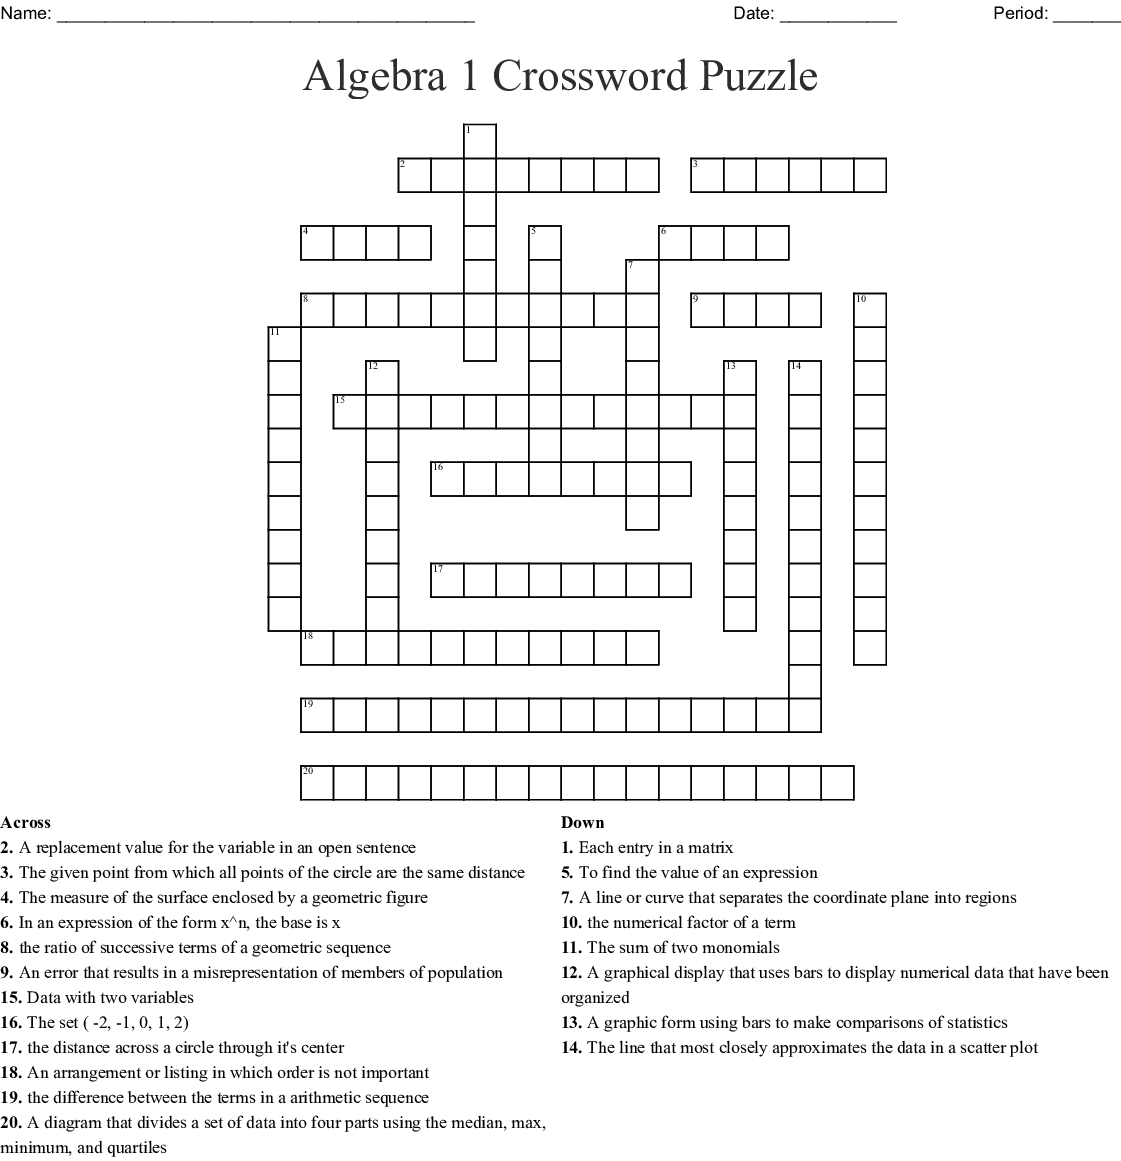 Algebra 1 Crossword Puzzle Crossword - Wordmint - Algebra Crossword Puzzle Printable